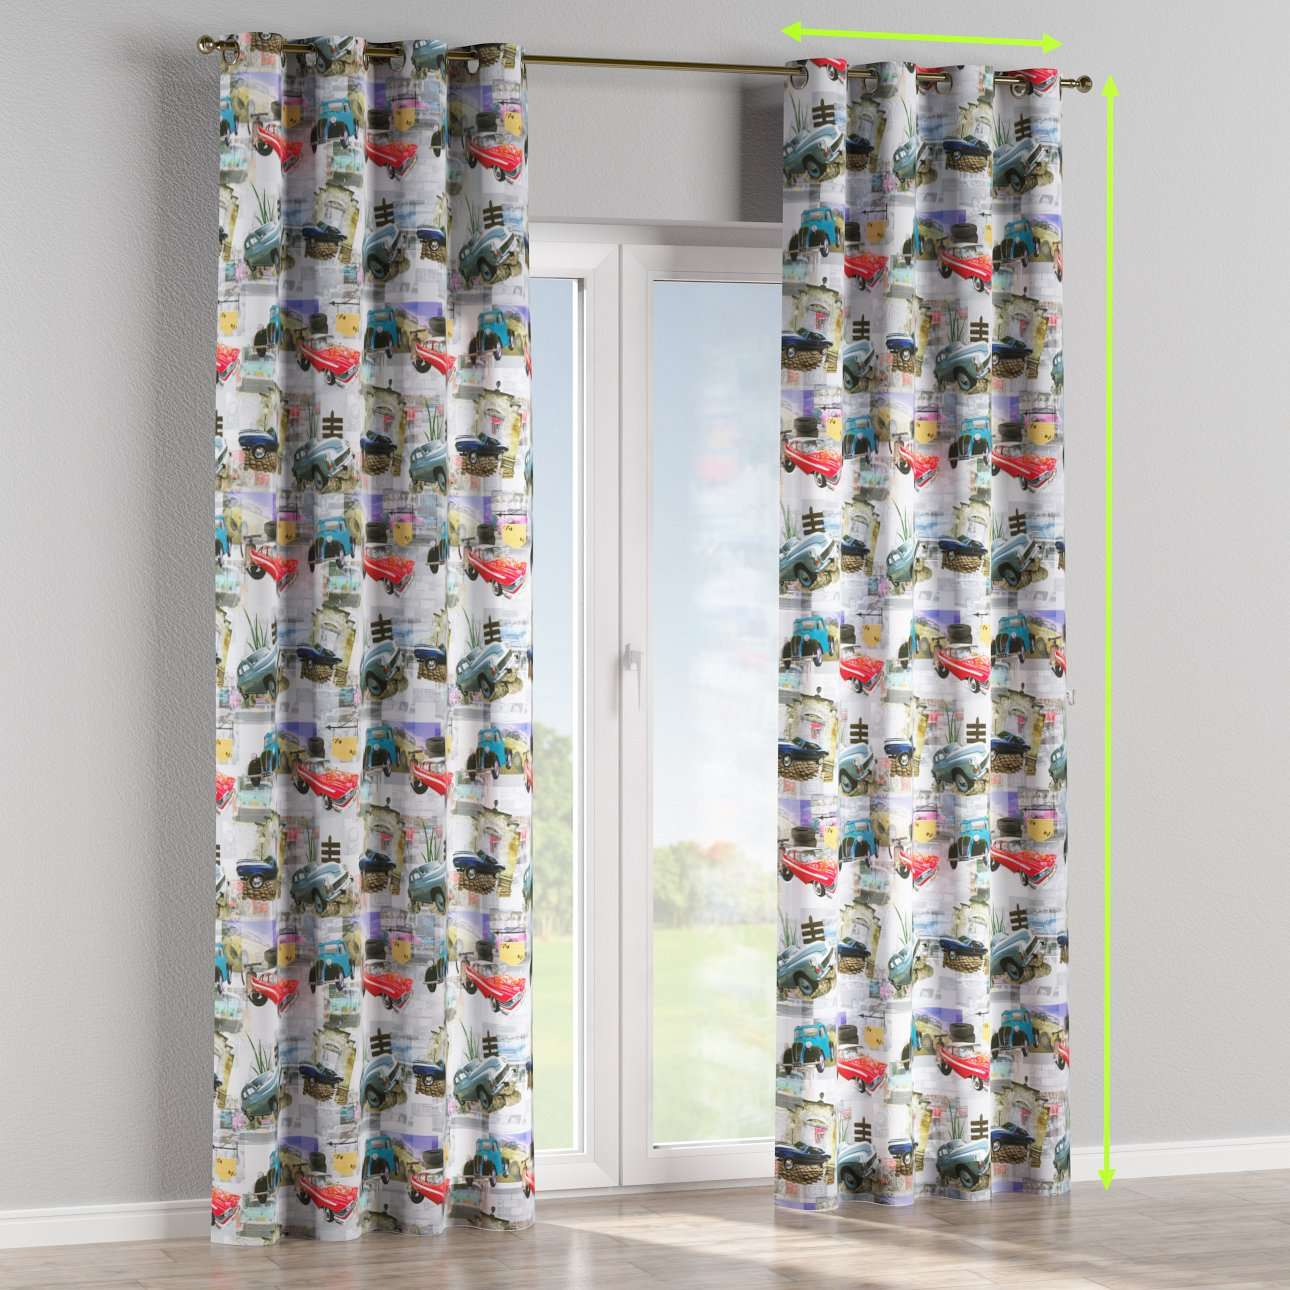 Eyelet curtains in collection Freestyle, fabric: 140-91